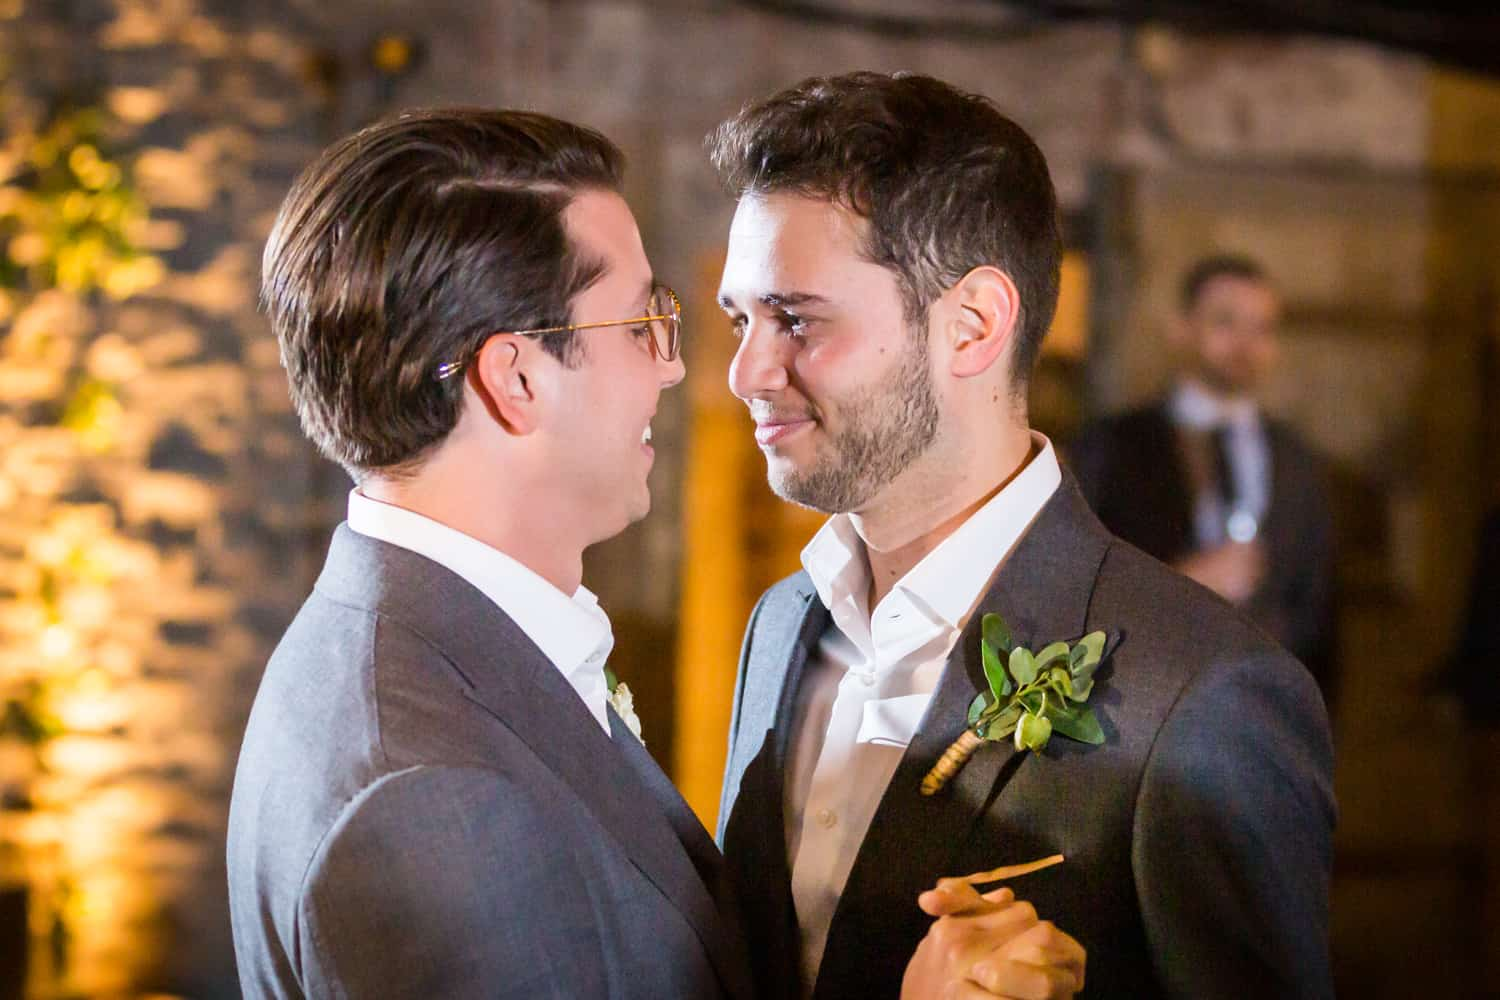 Greenpoint Loft wedding photos of two grooms during first dance